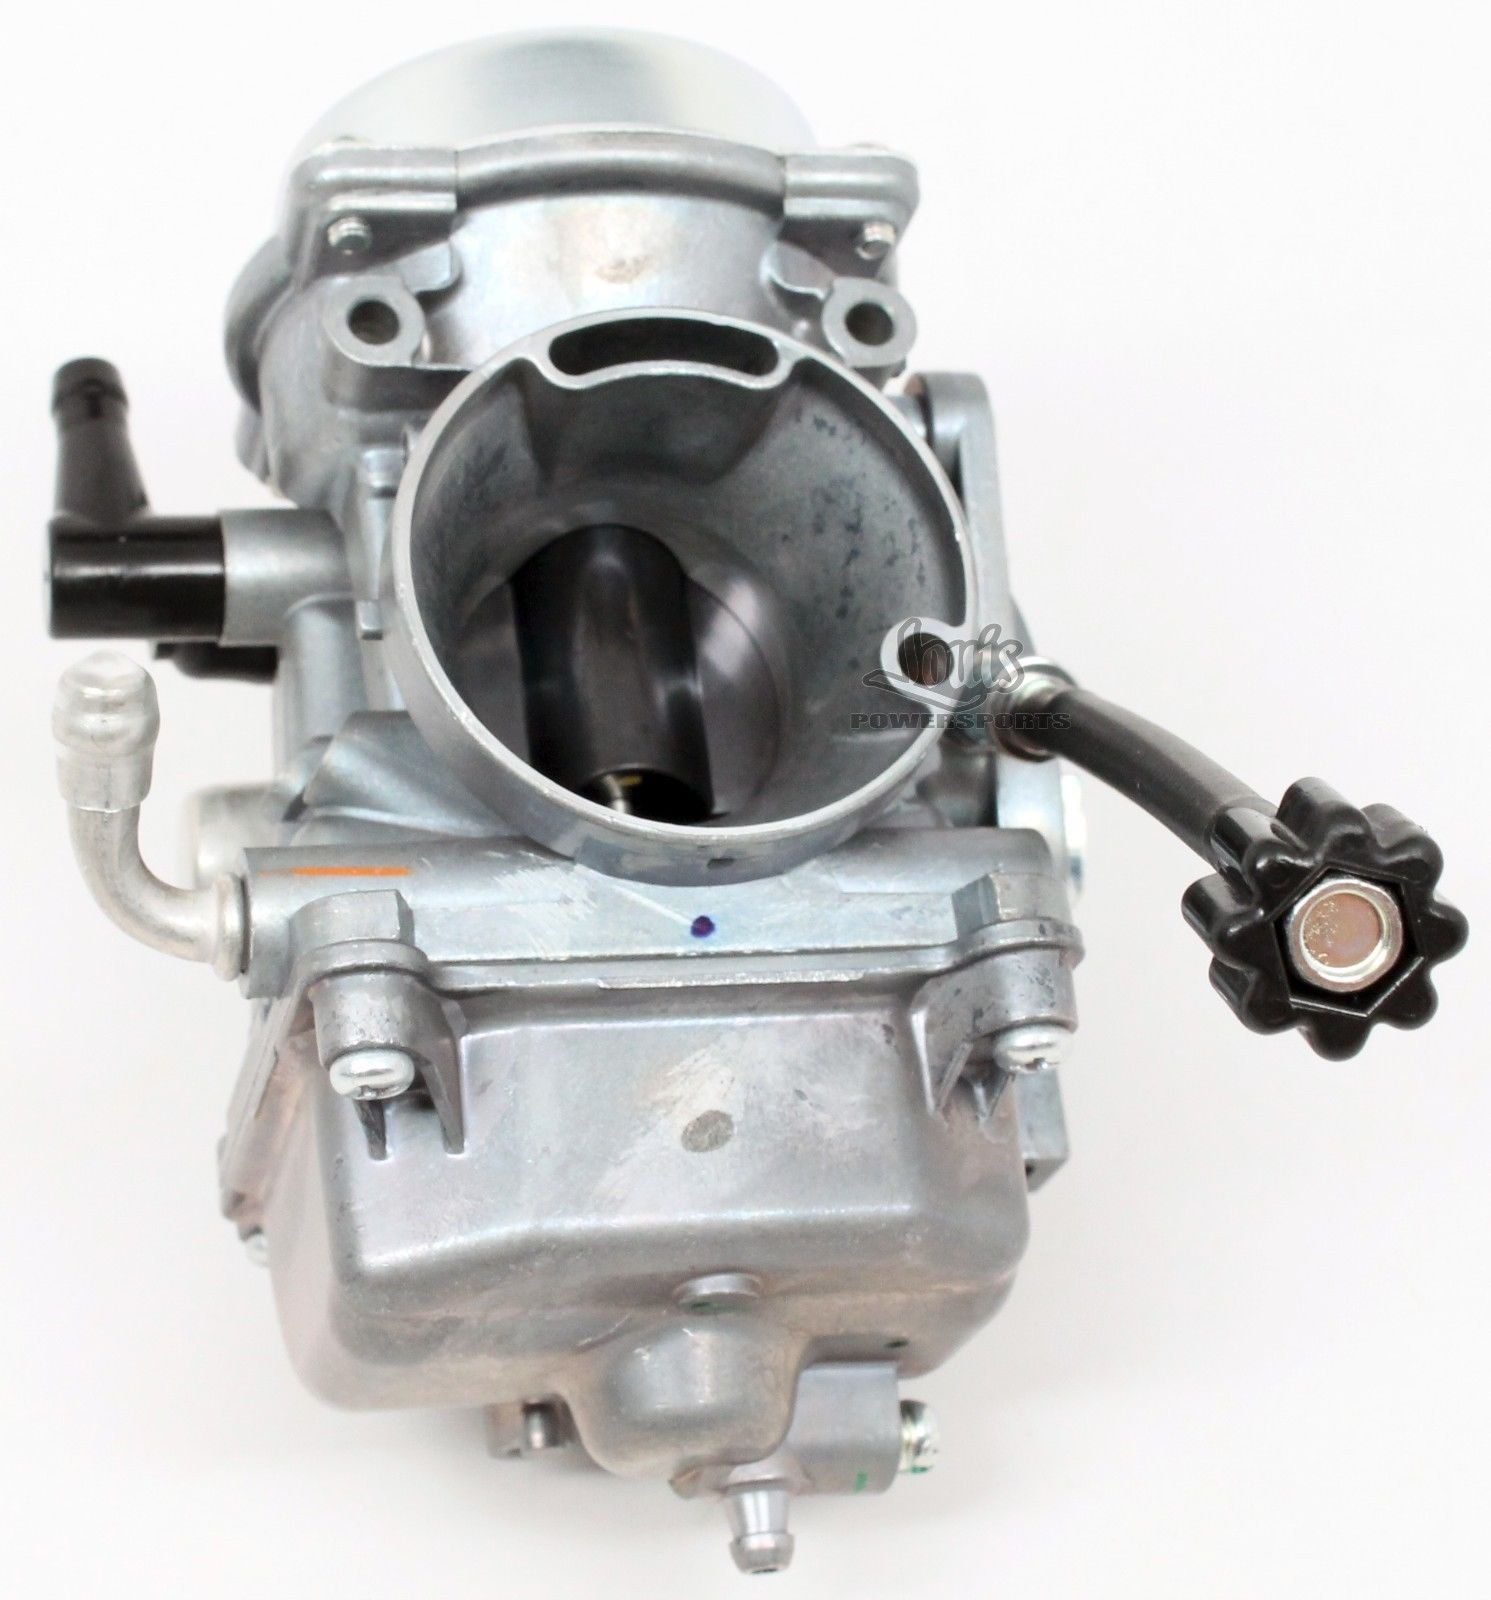 Arctic Cat 2002 2003 2004 375 400 2x4 4x4 Auto Manual Automatic FIS Carburetor Complete Carb Assembly 0470-454 New OEM